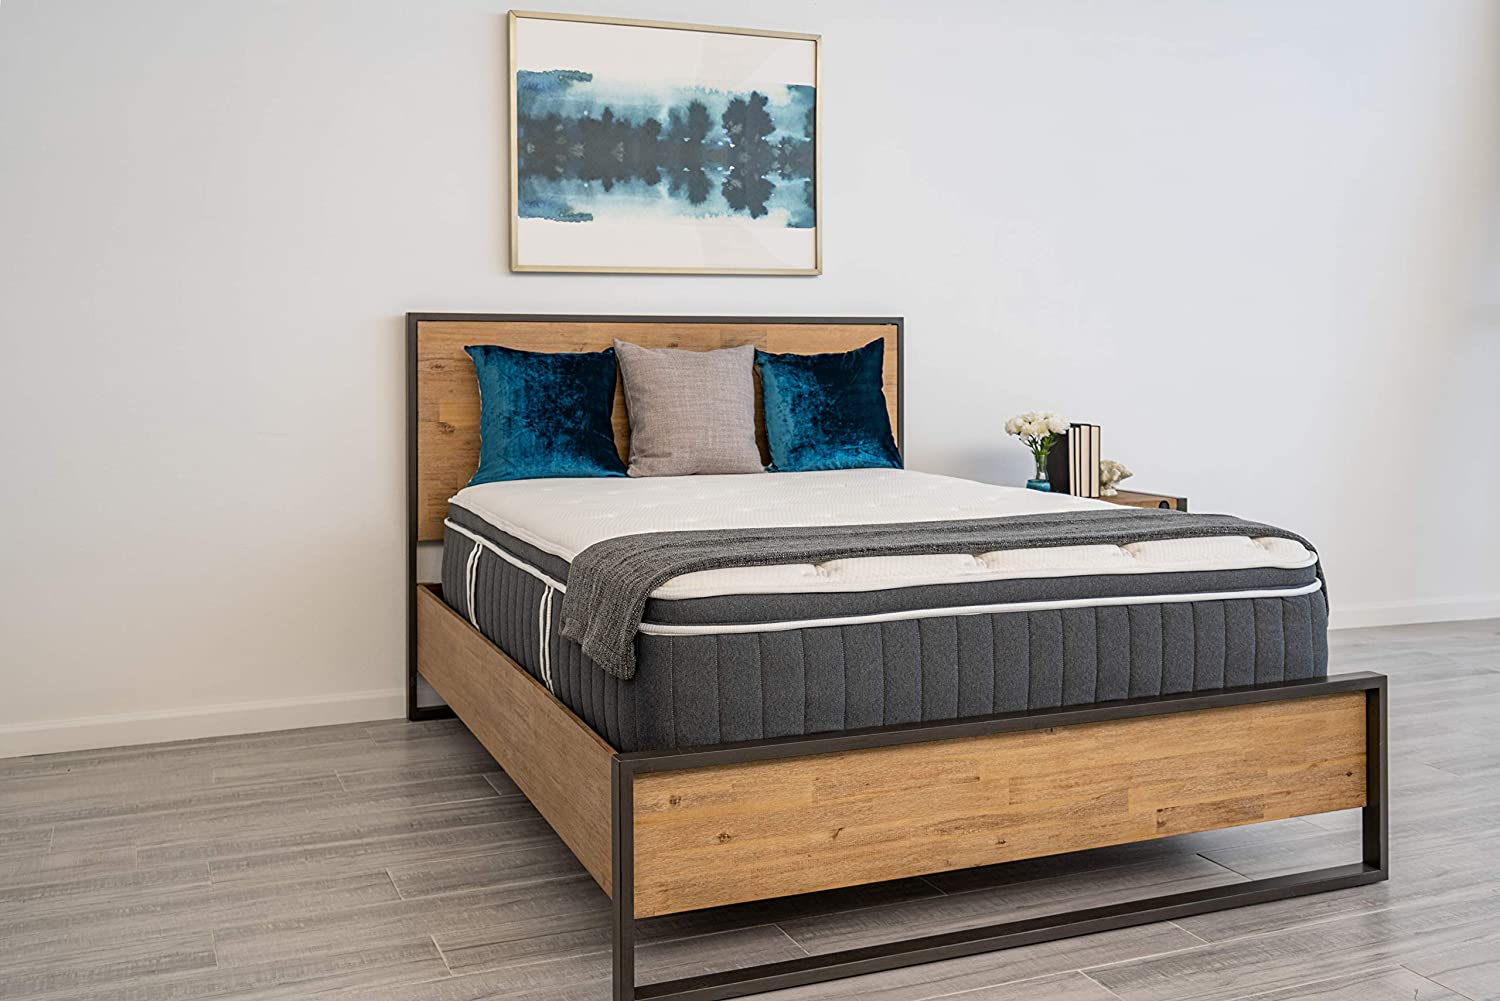 """Dreamfoam Bedding Polar 14"""" Cushion Firm Eurotop Cooling Hybrid Mattress with Cool to Touch Fabric, Twin"""